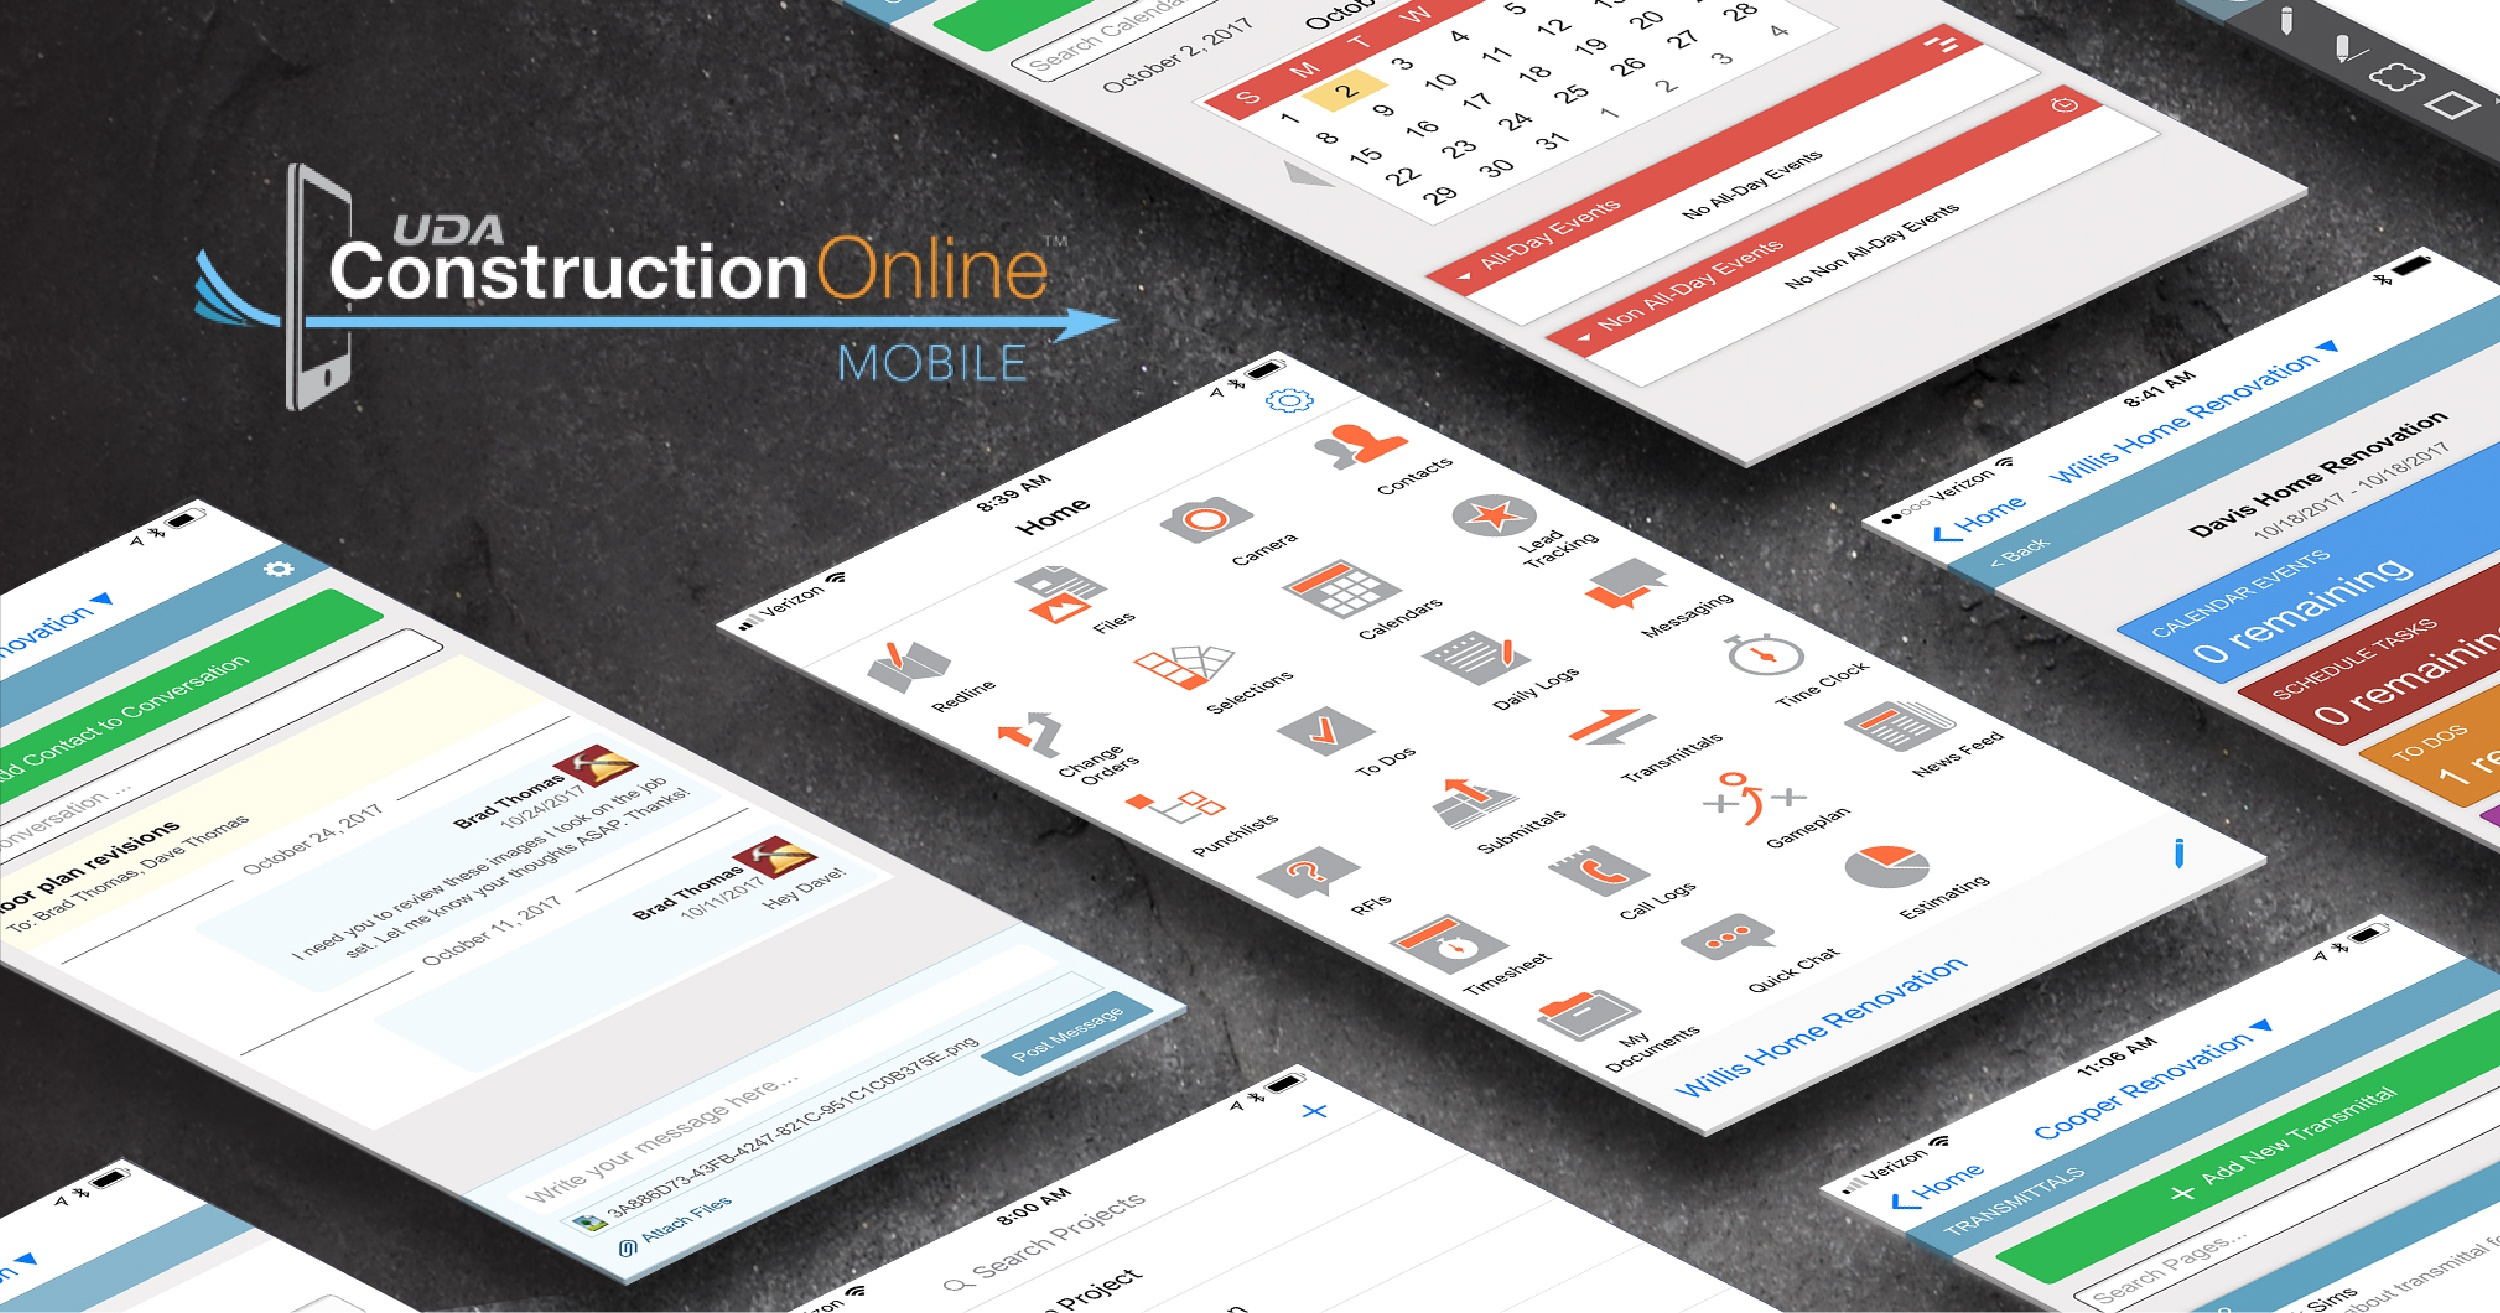 UDA Connects Project Teams through New ConstructionOnline Mobile App